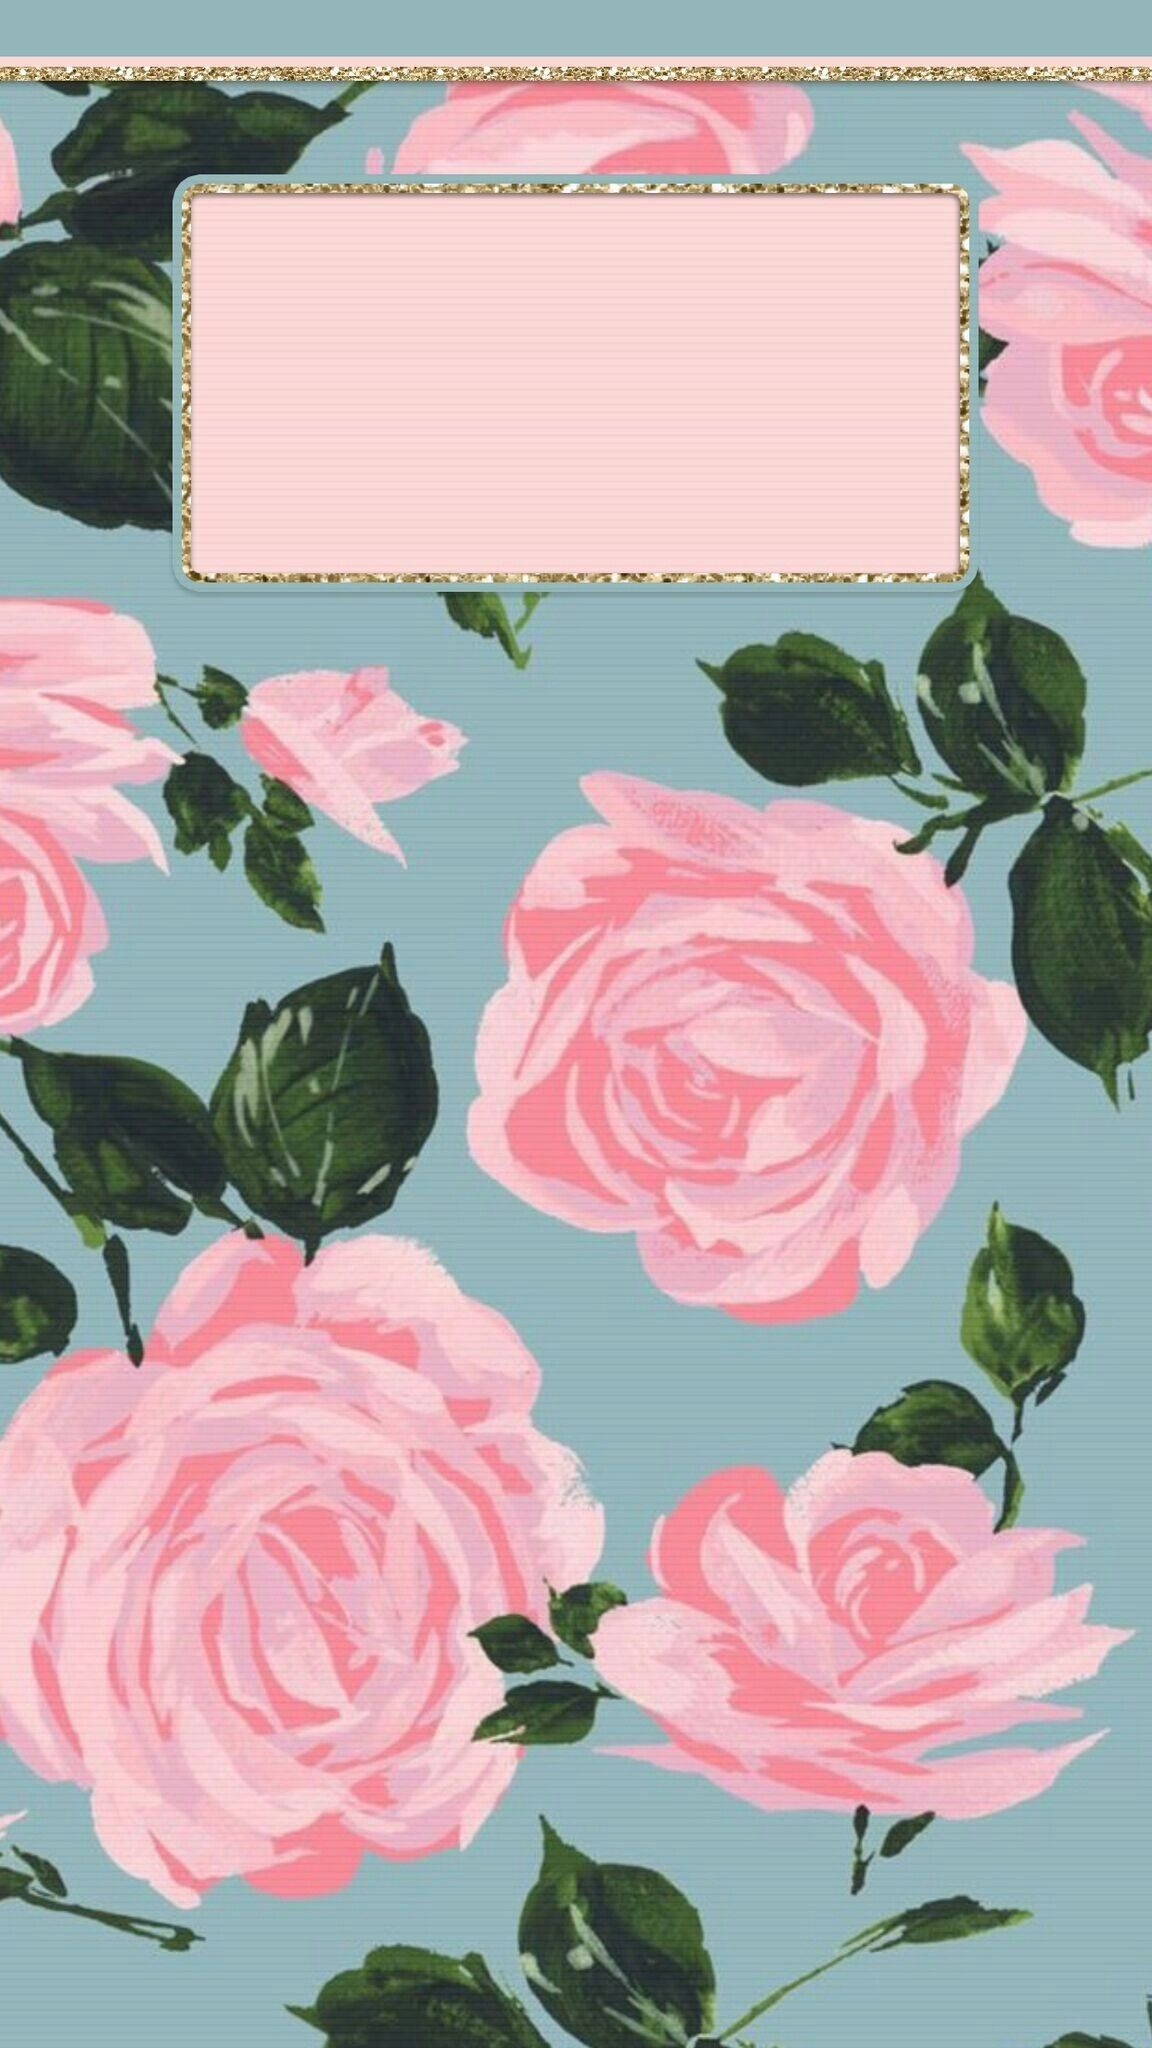 Pin By Debbie Cruz On Phone Wallpaper Pink Wallpaper Iphone